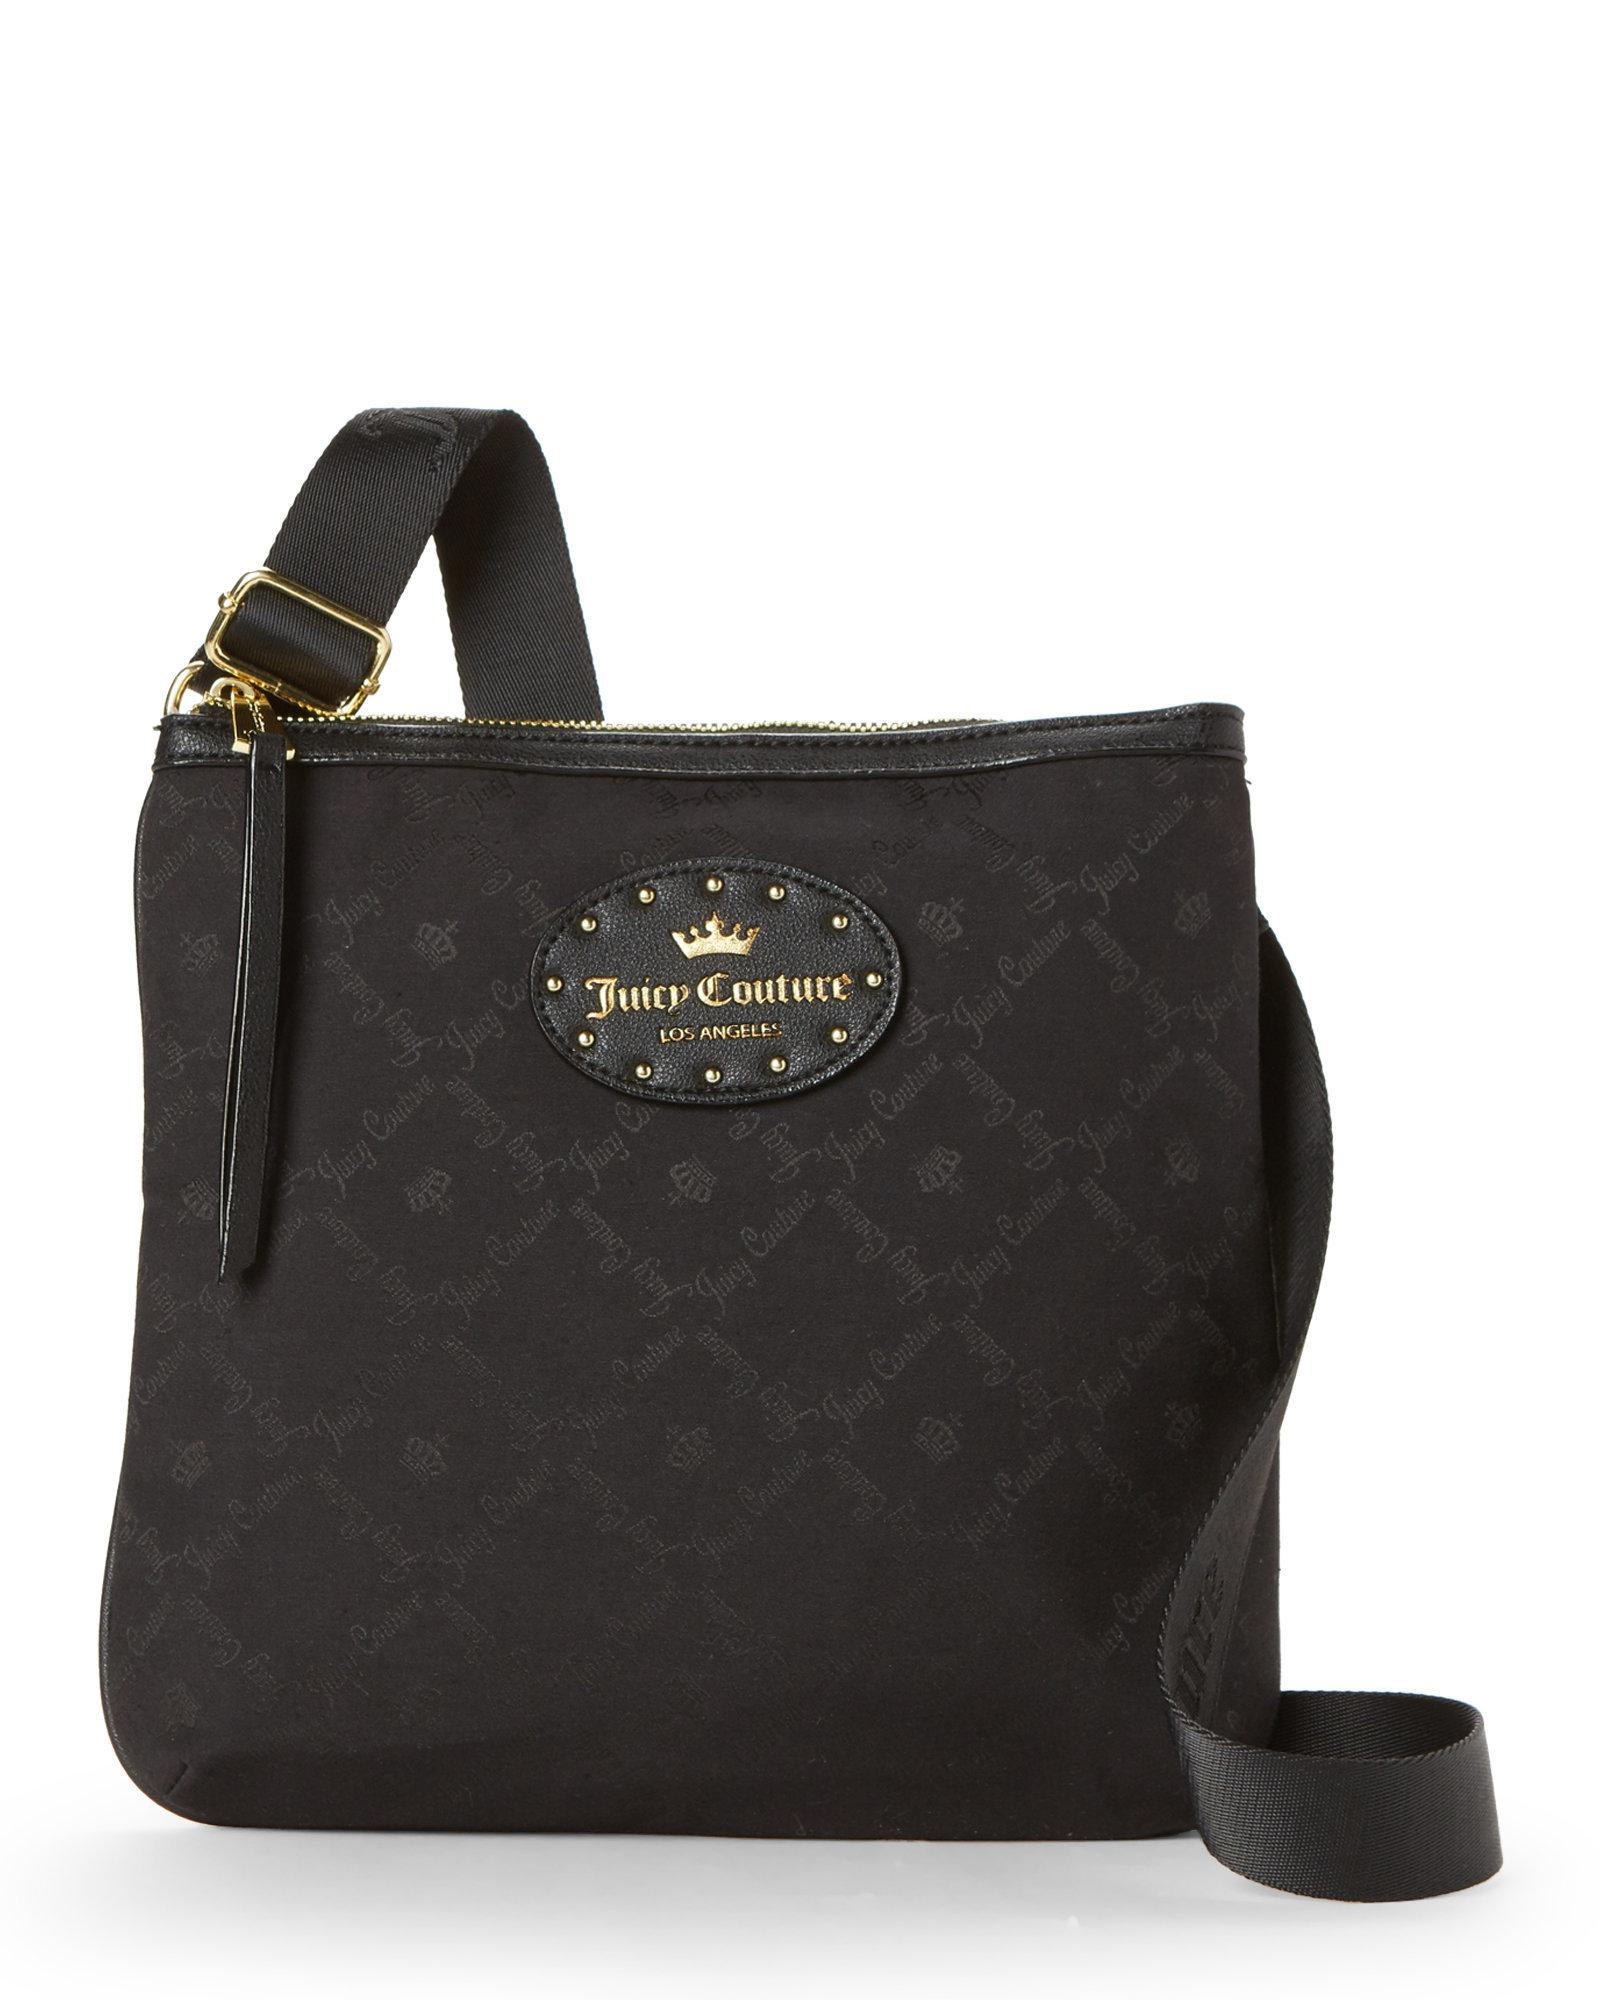 2dfe68c33 Juicy Couture Black Yours Truly Crossbody in Black - Lyst